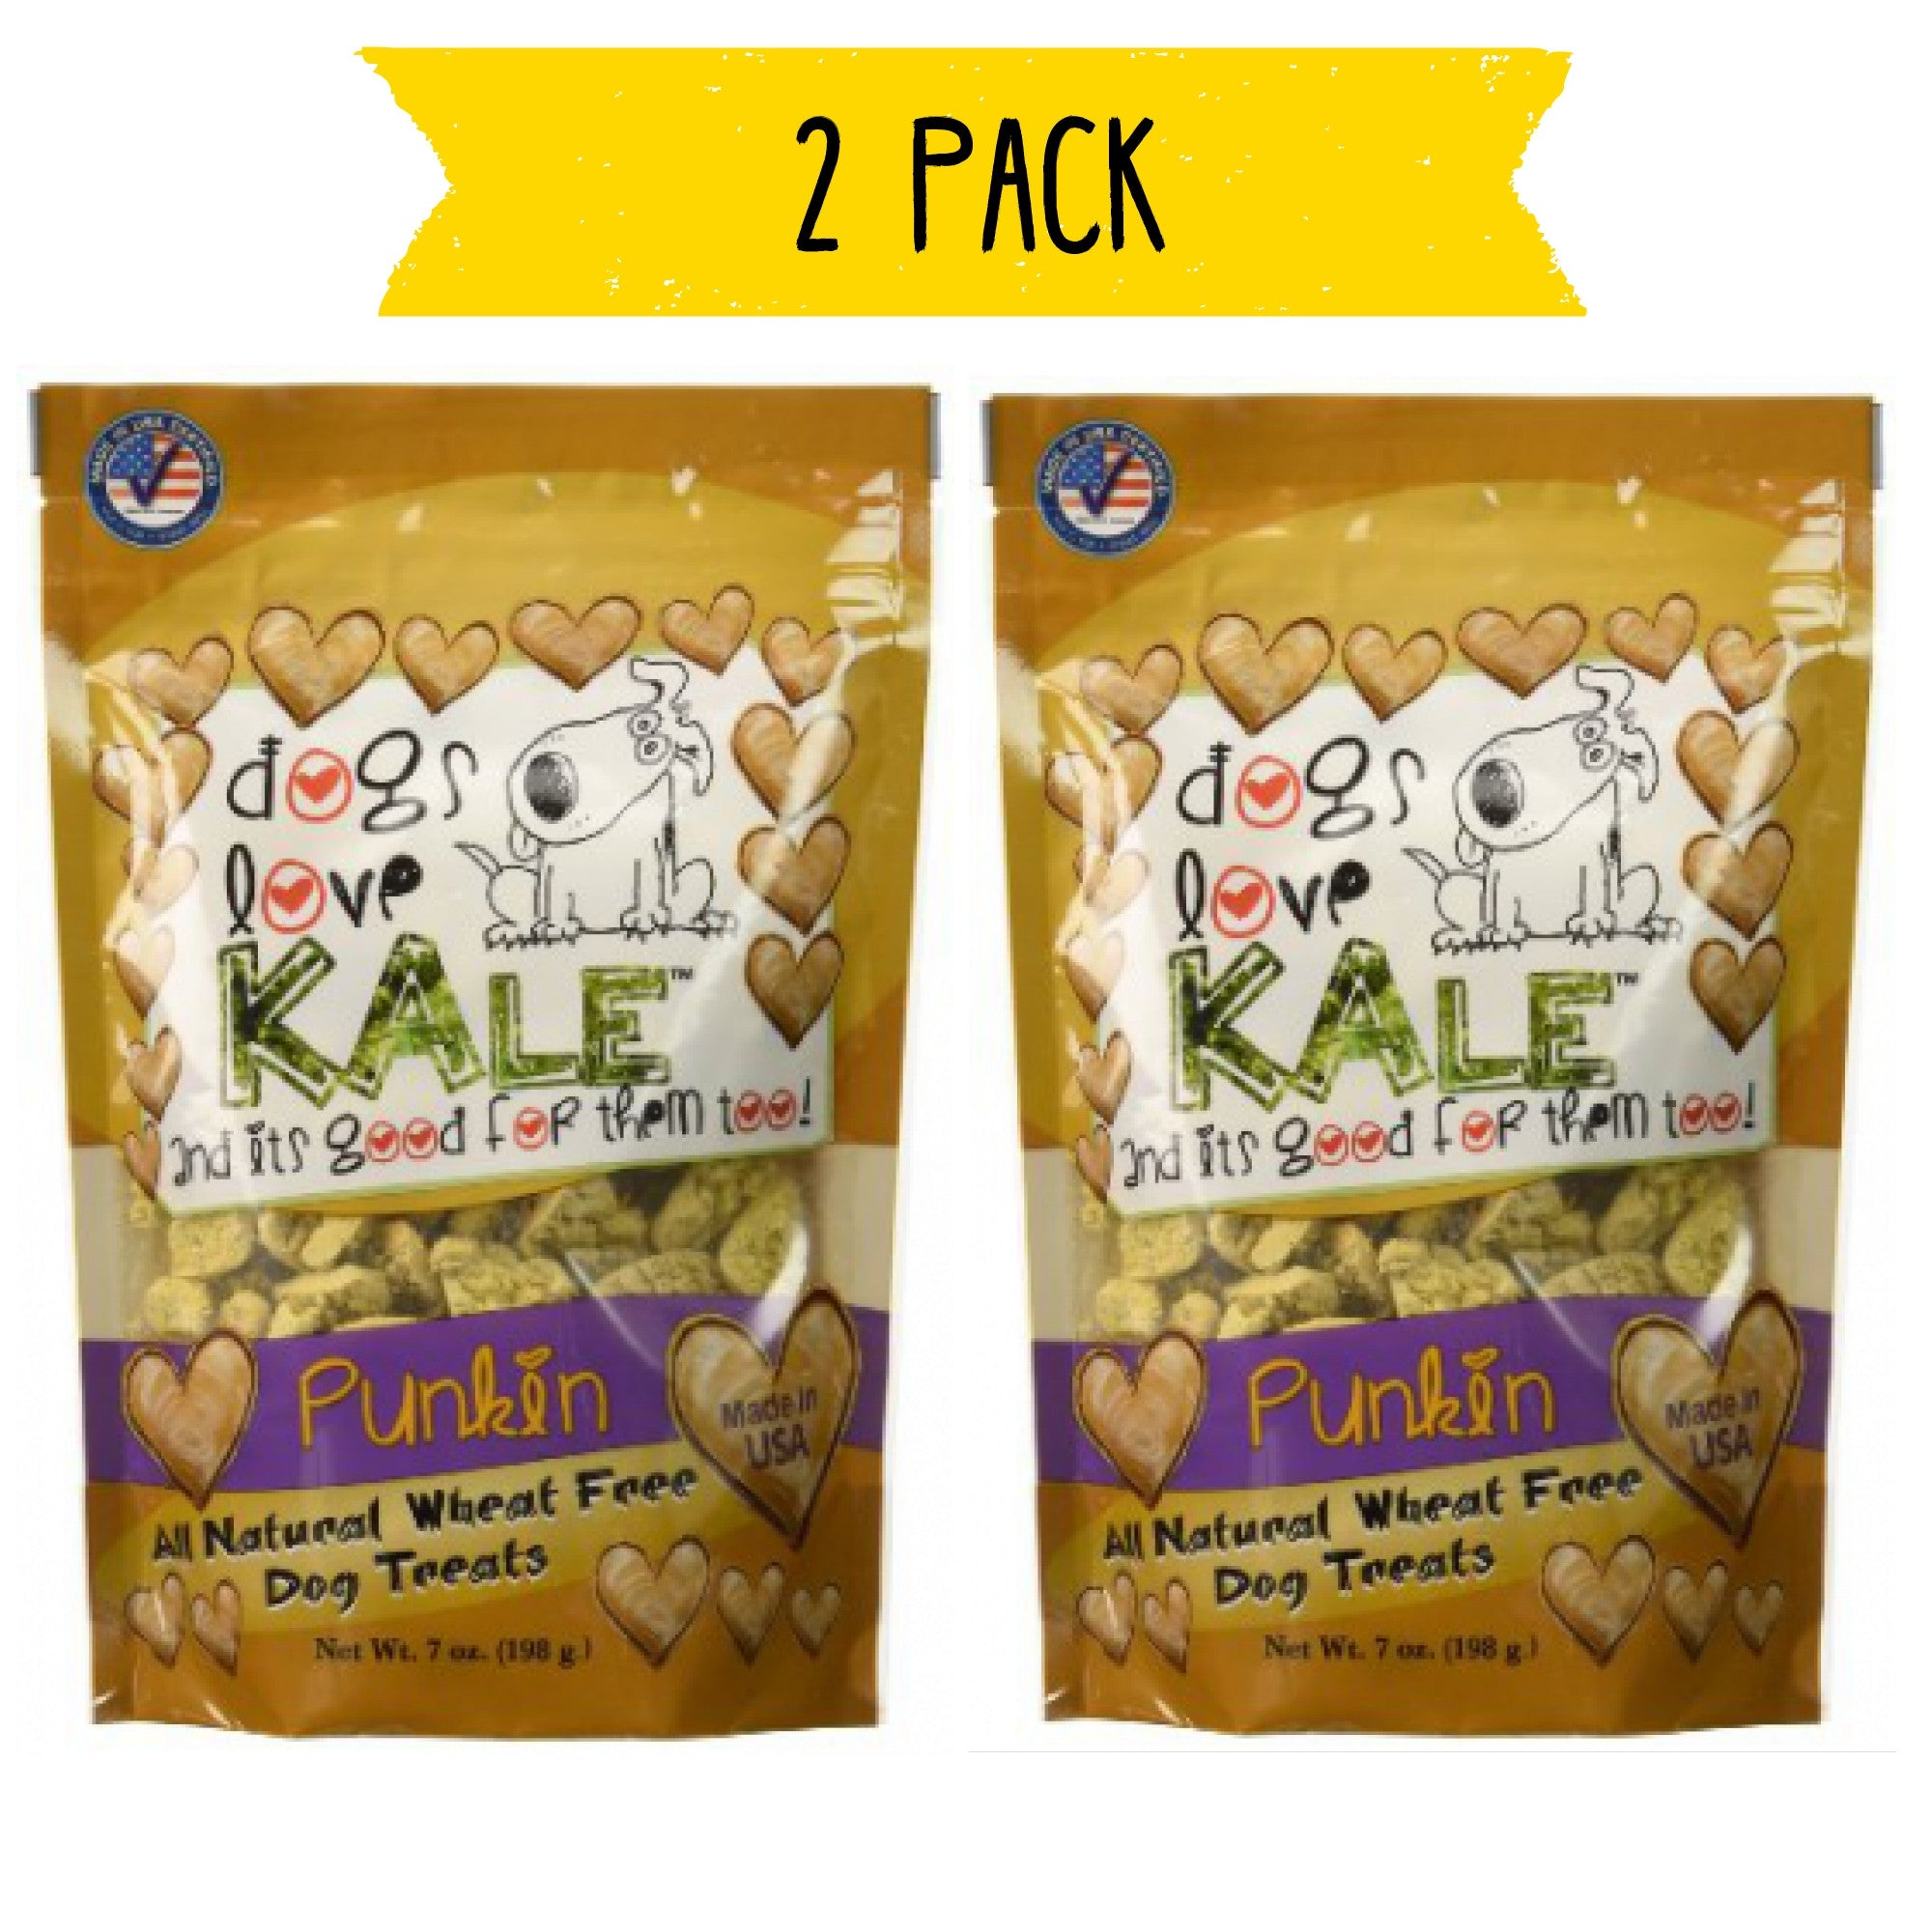 Dogs Love Kale Wheat Free Treats - Punkin'